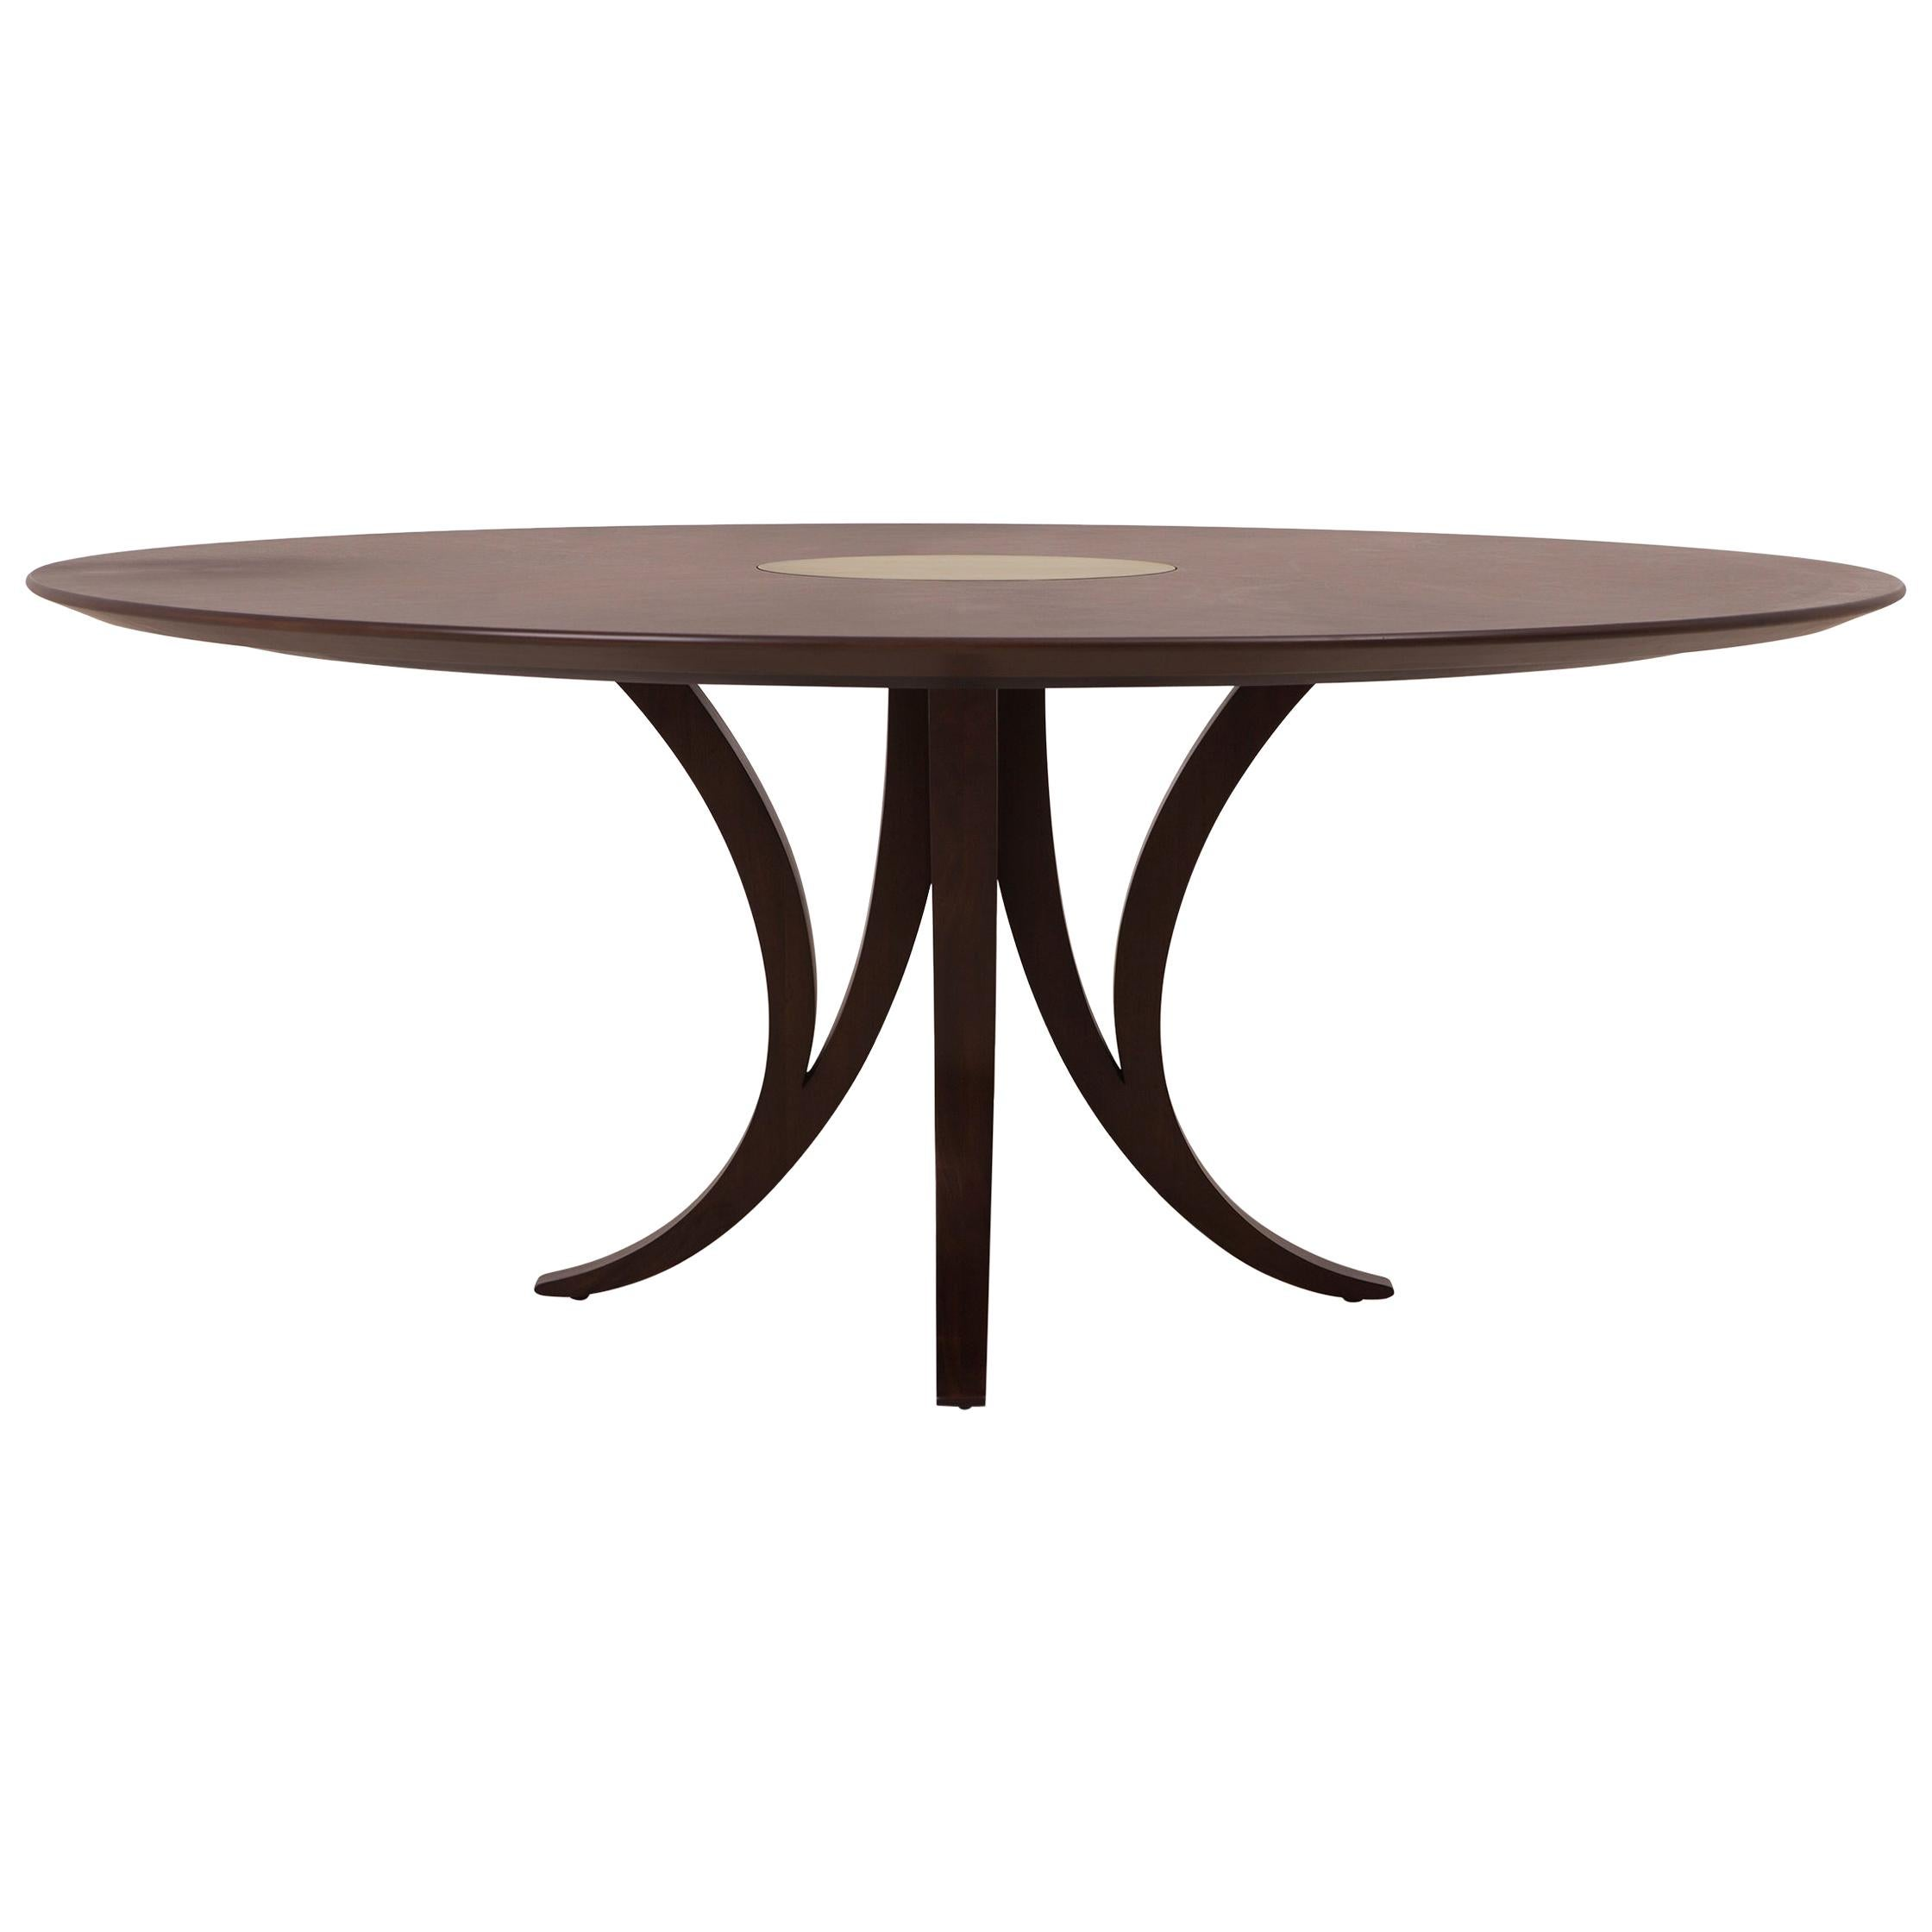 Logical Round Table